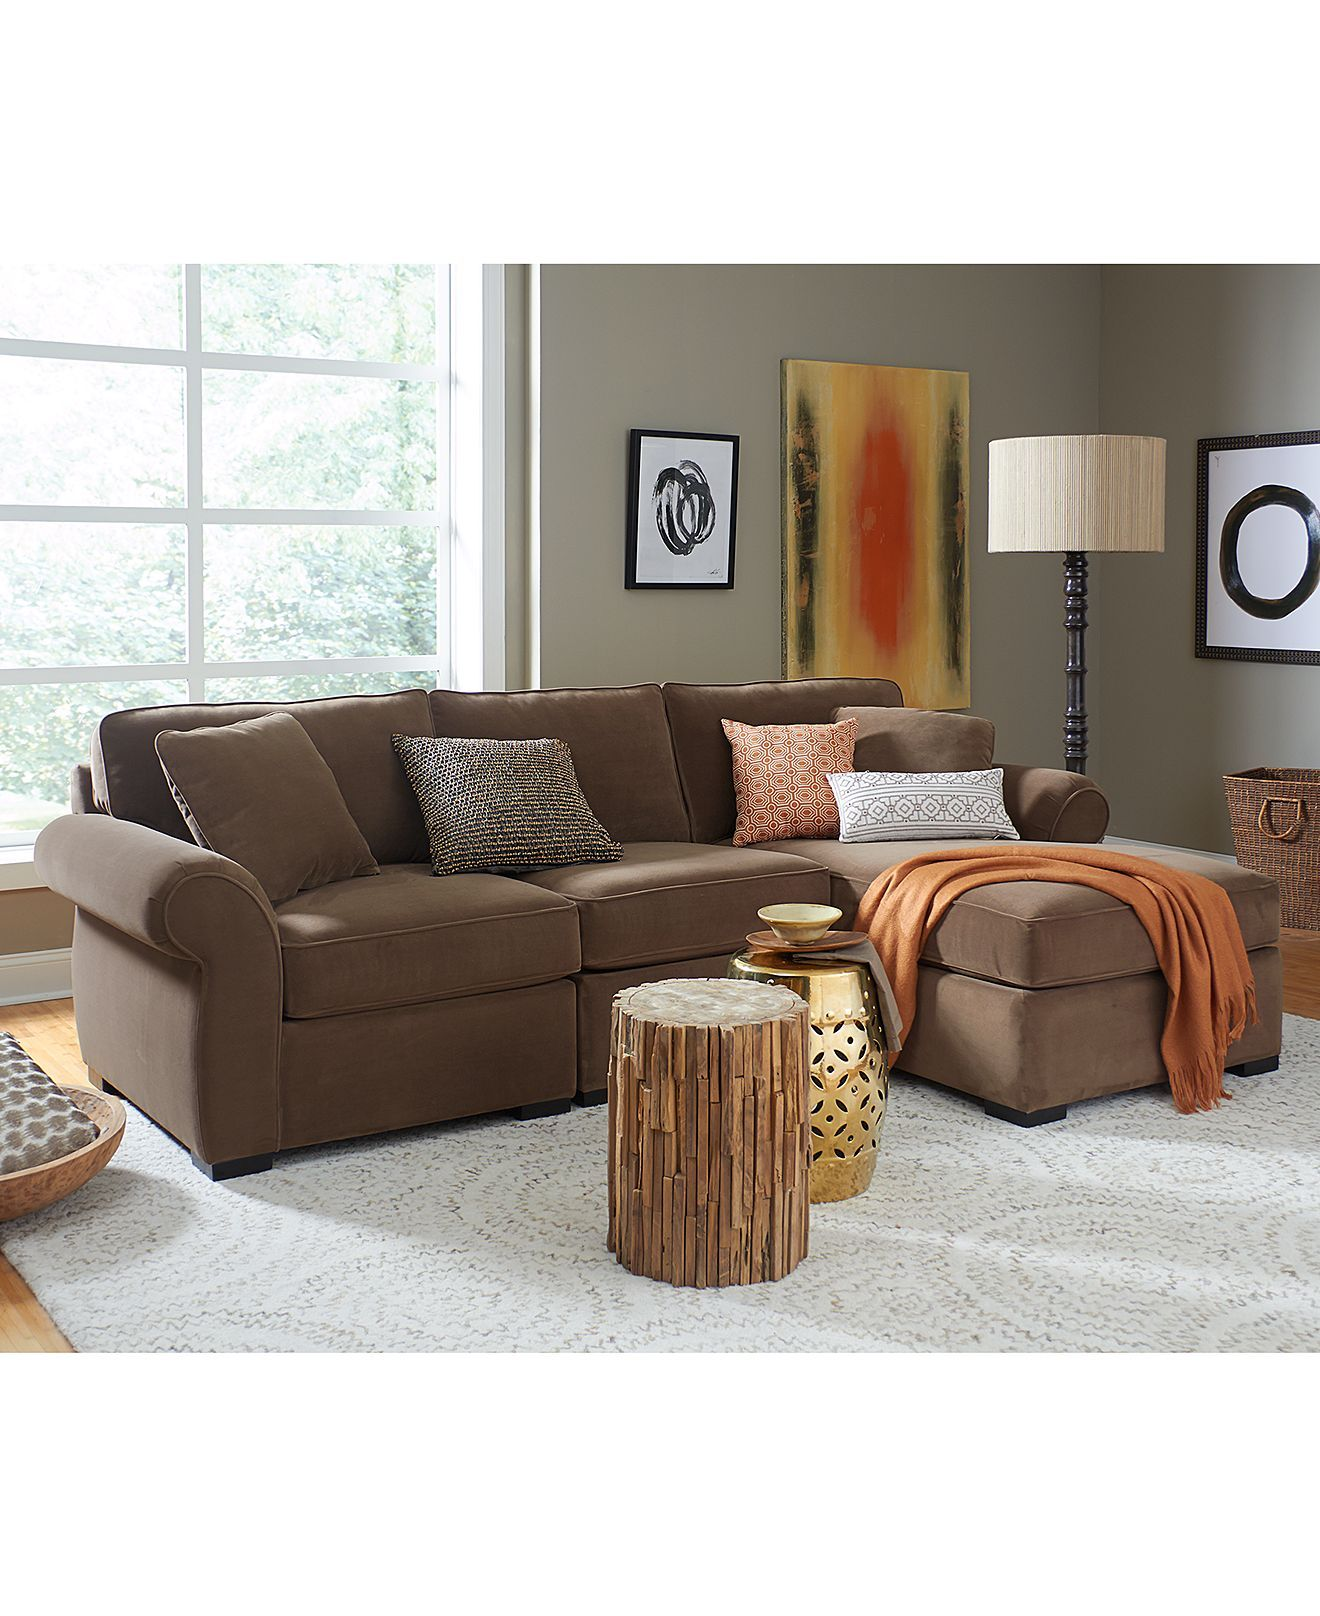 Trevor fabric sectional living room furniture in mocha color 6 piece chaise sectional not pictured here on sale for 2399 00 reg 2999 00 macys